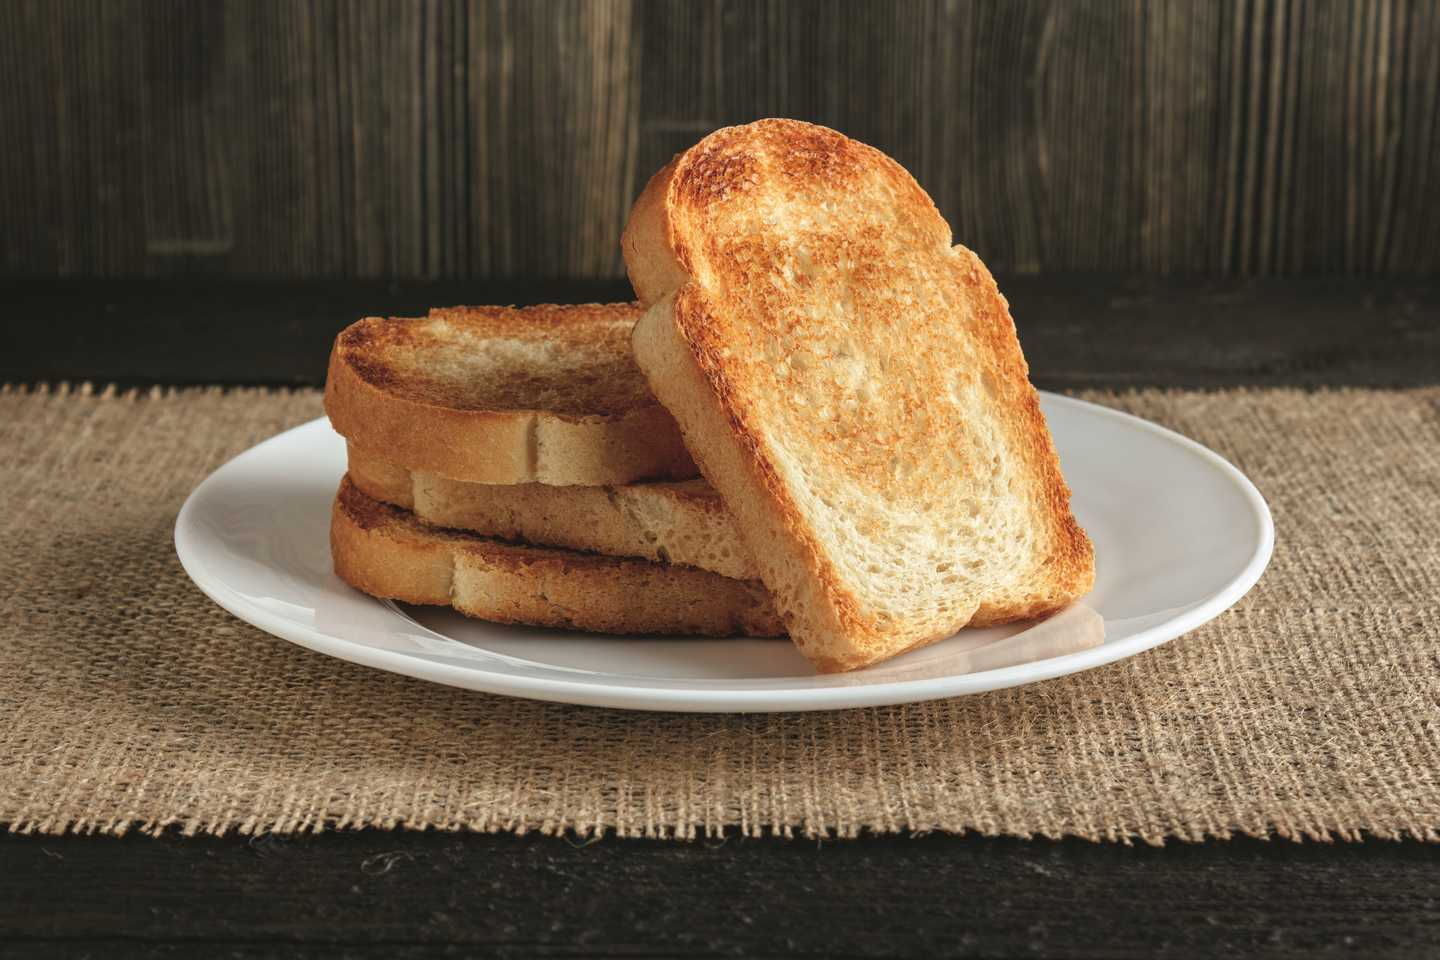 Four slices of golden toast on a plate